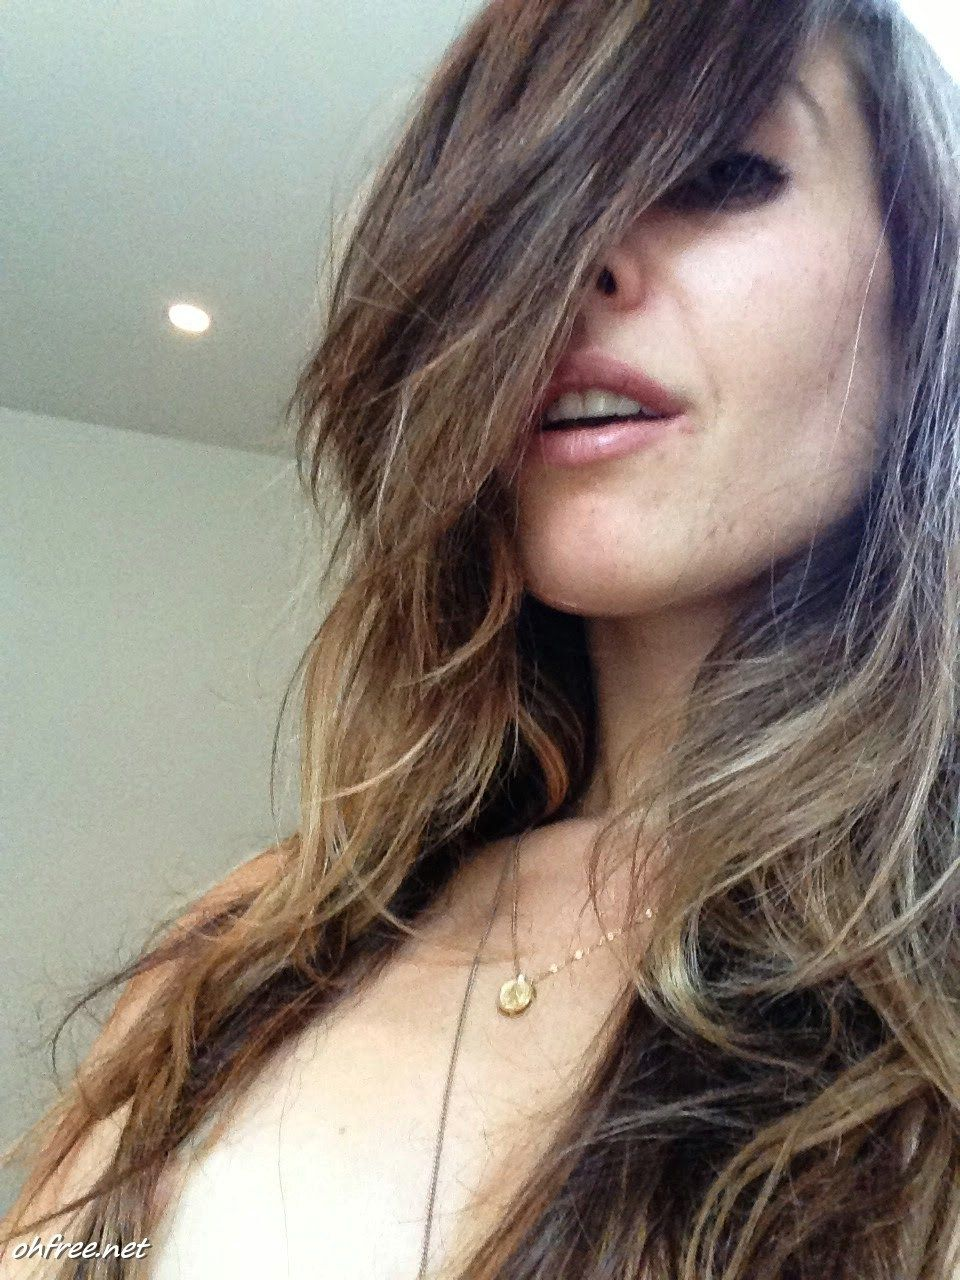 Celebrites Carly Pope nudes (28 foto and video), Ass, Sideboobs, Selfie, in bikini 2020